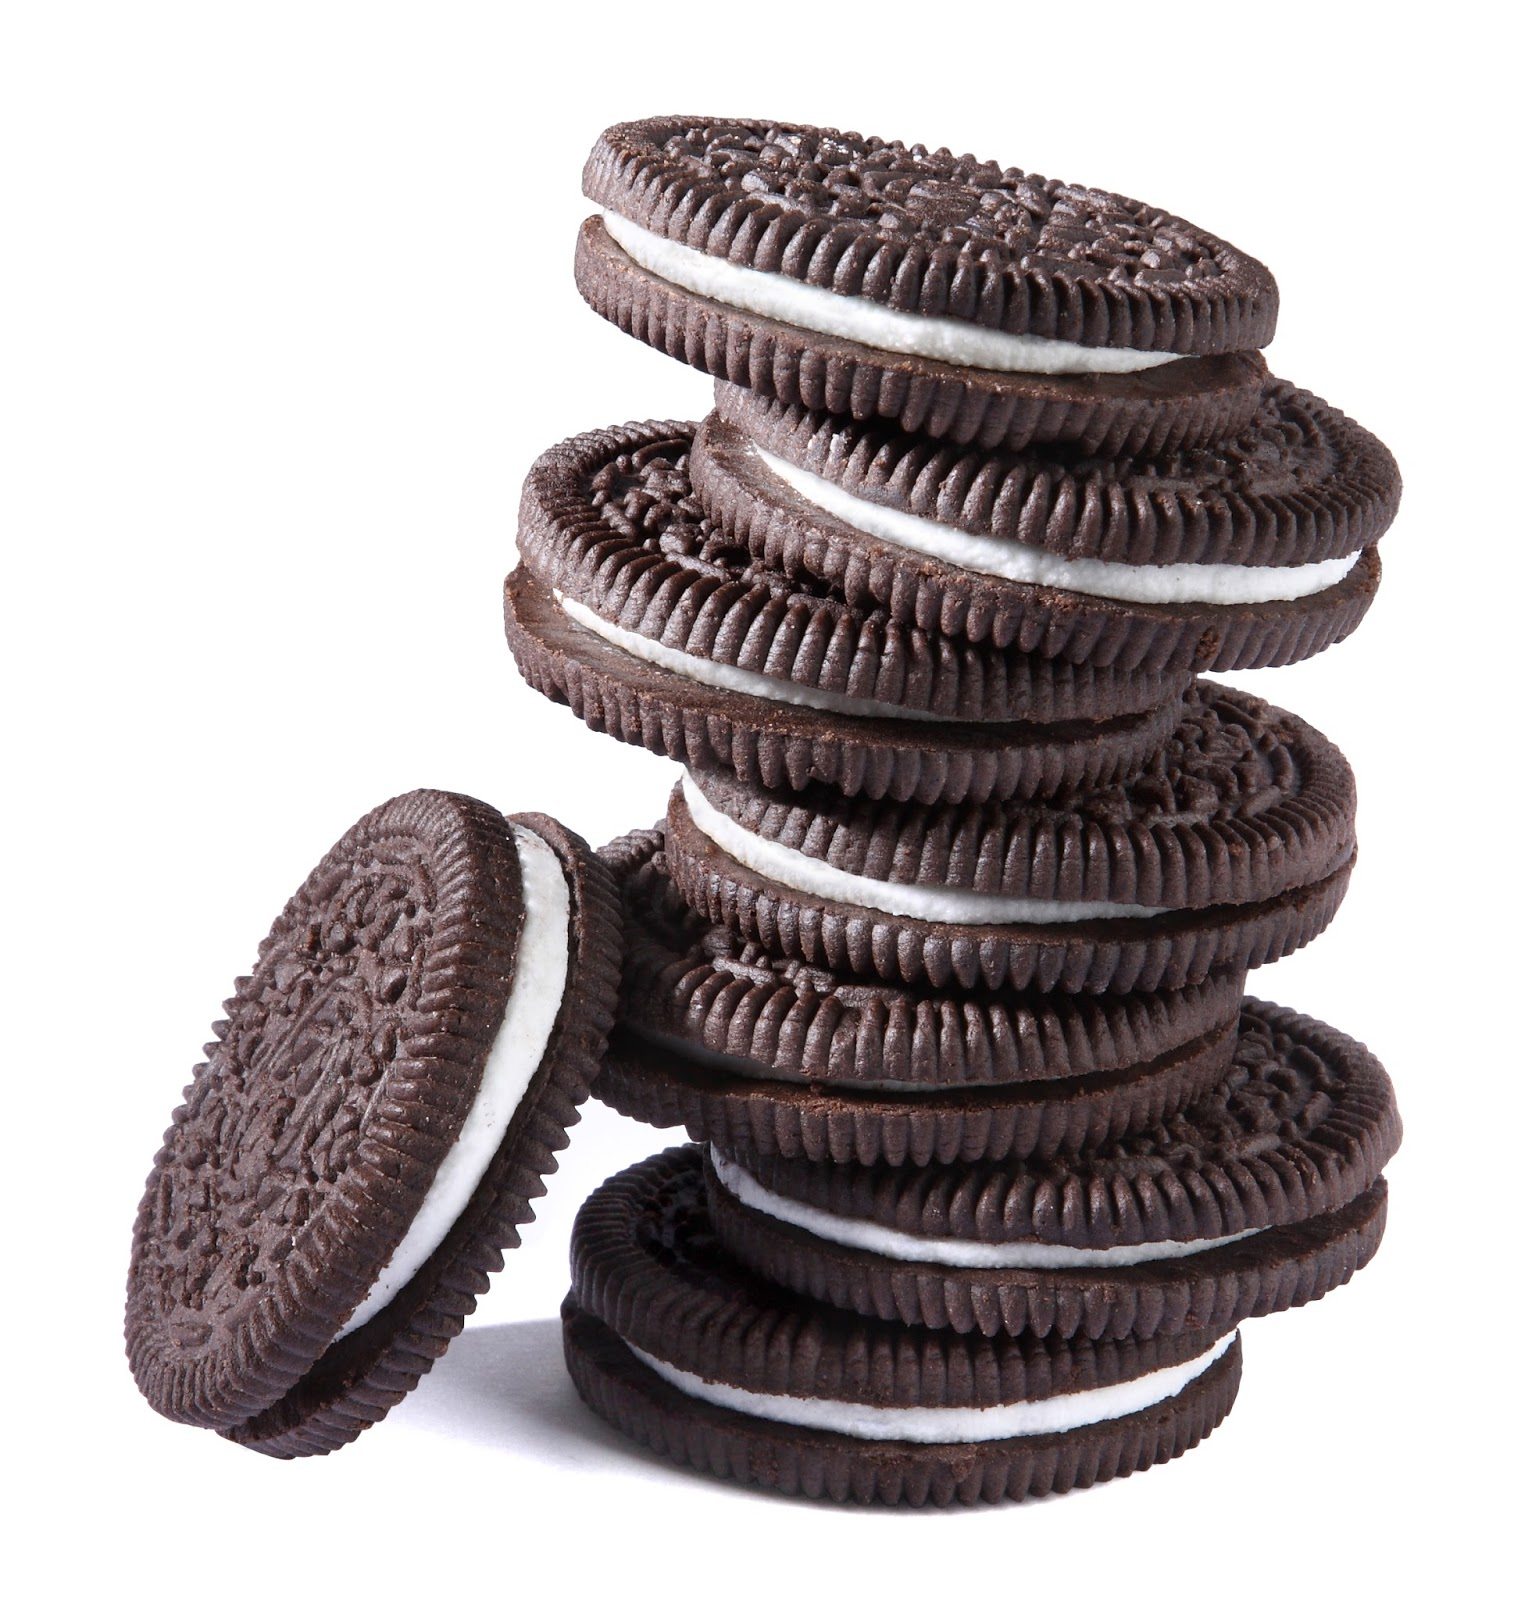 04ac0c15fe0a Every Day Is Special  March 6 - Oreo Cookie Day